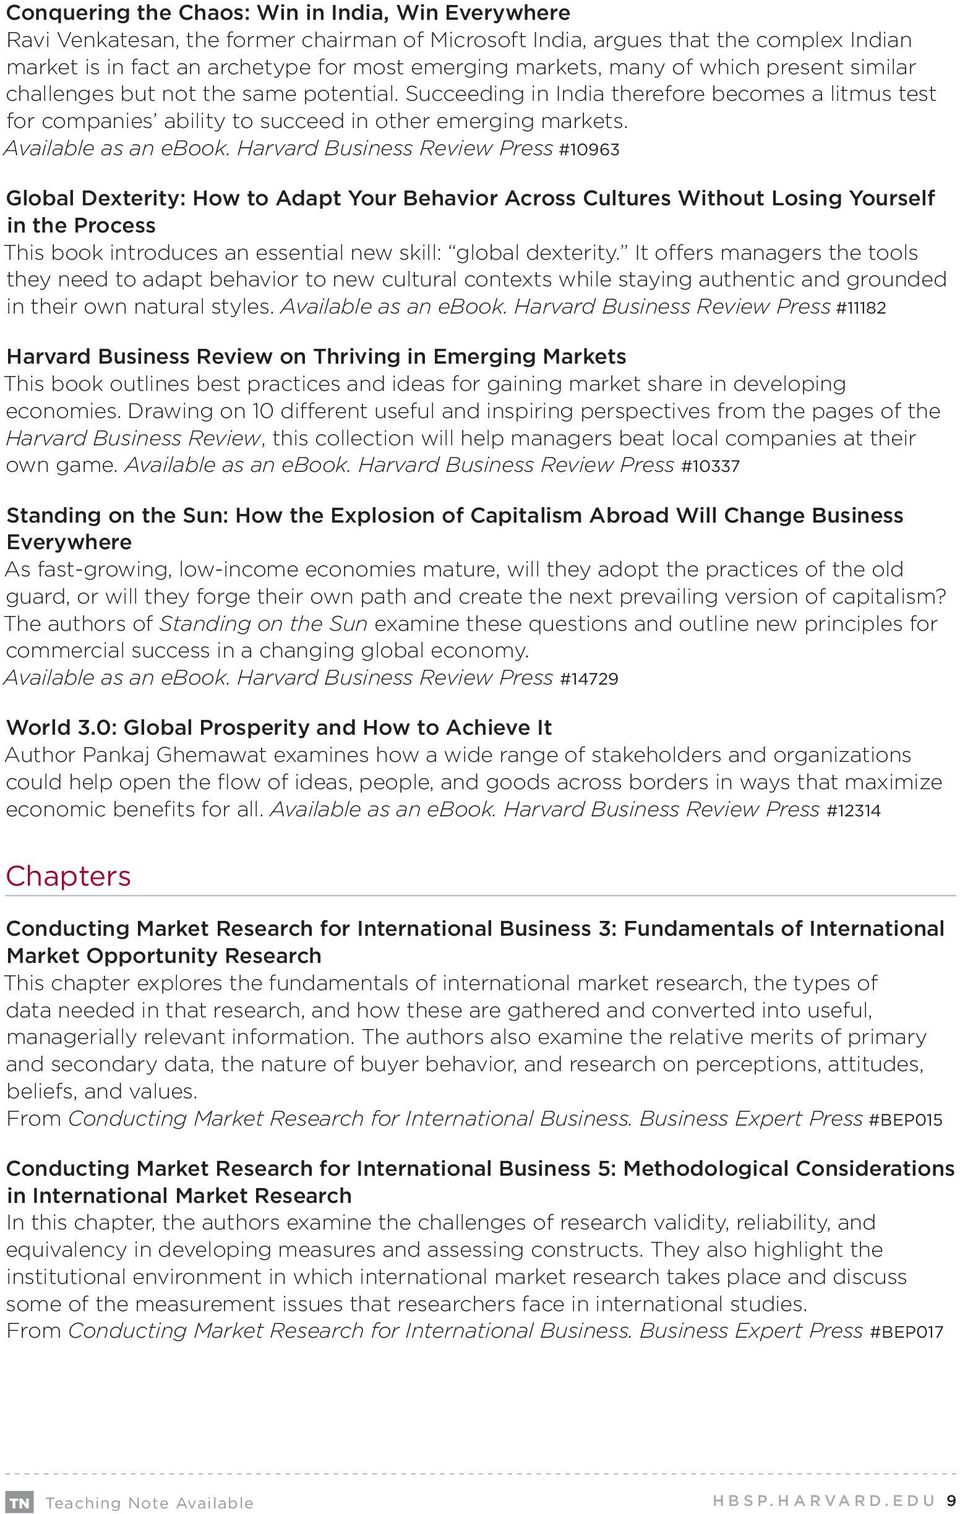 International business articles books chapters cases course available as an ebook fandeluxe Gallery